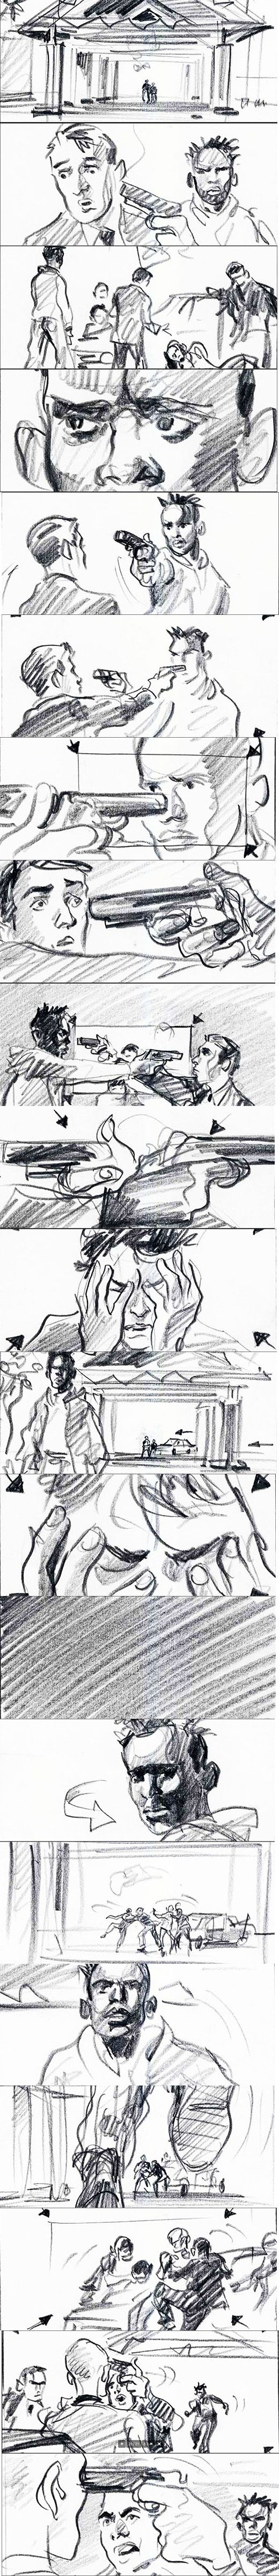 LaHaine-MatthieuKassovitz_MaximeRebiere-StoryBoard. OMG the linework is so rough but still so incredibly realistic!!!